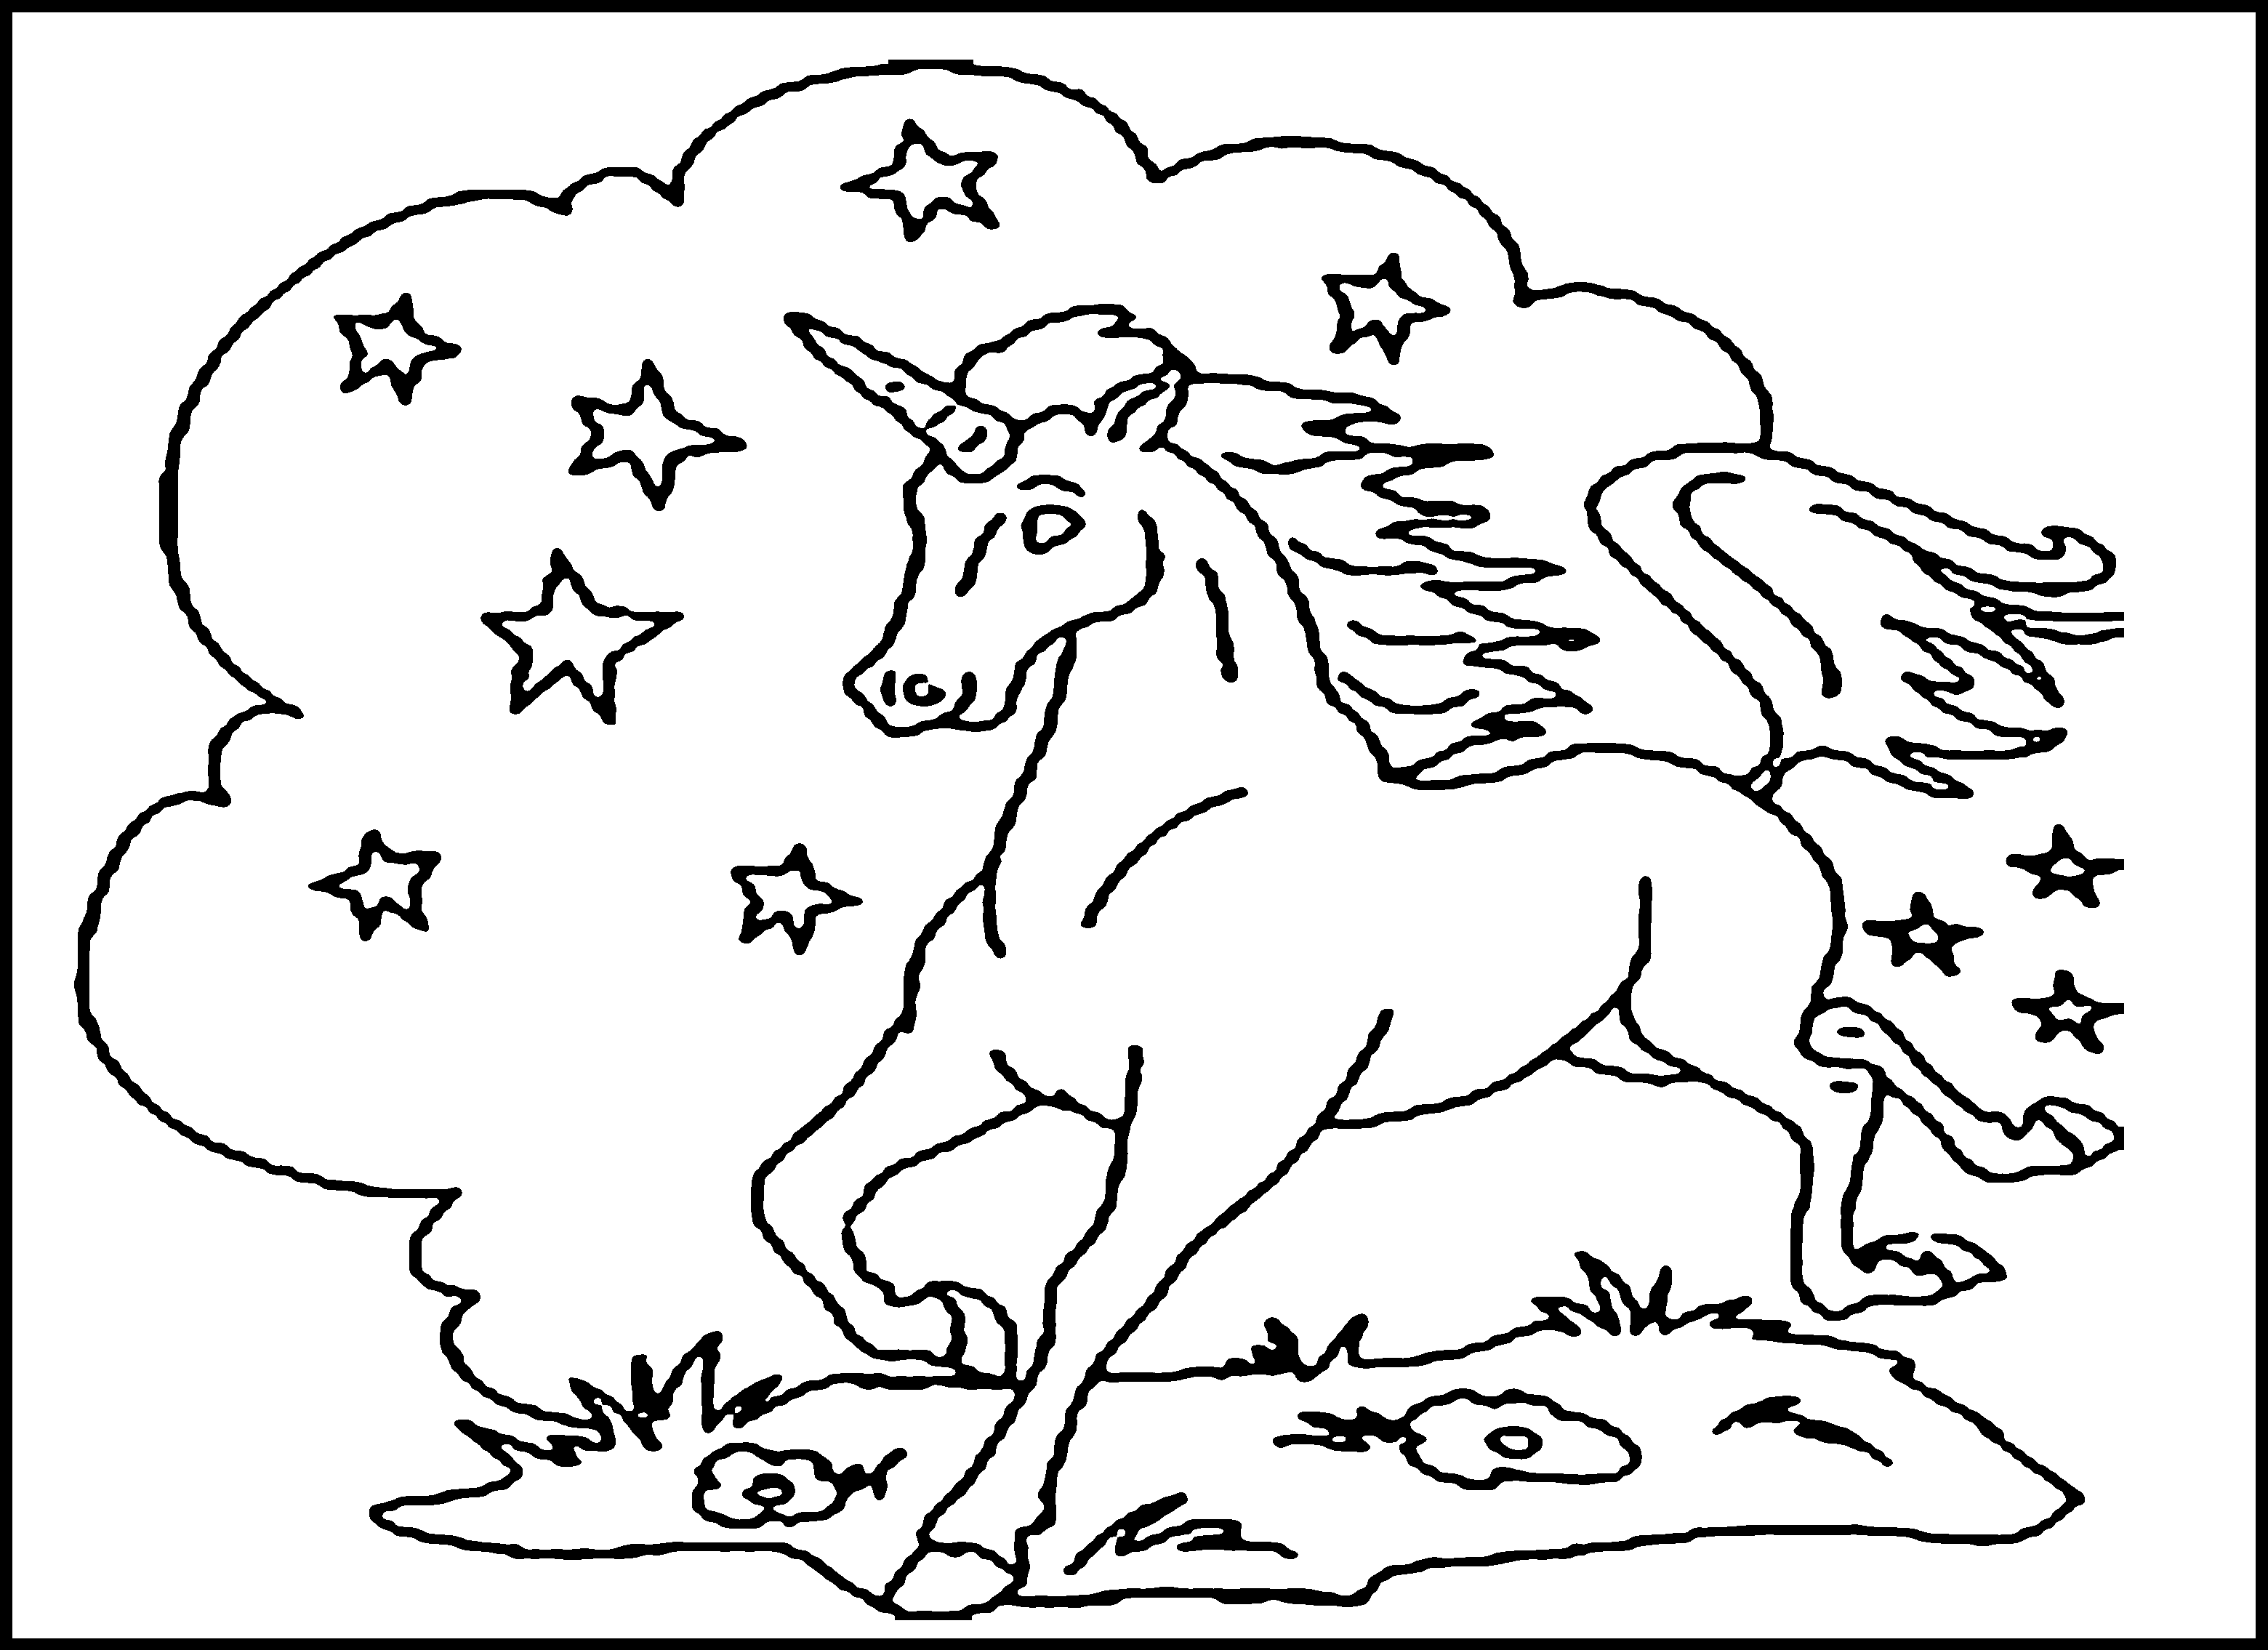 unicorn printable coloring pages - Coloring Sheets To Print Out